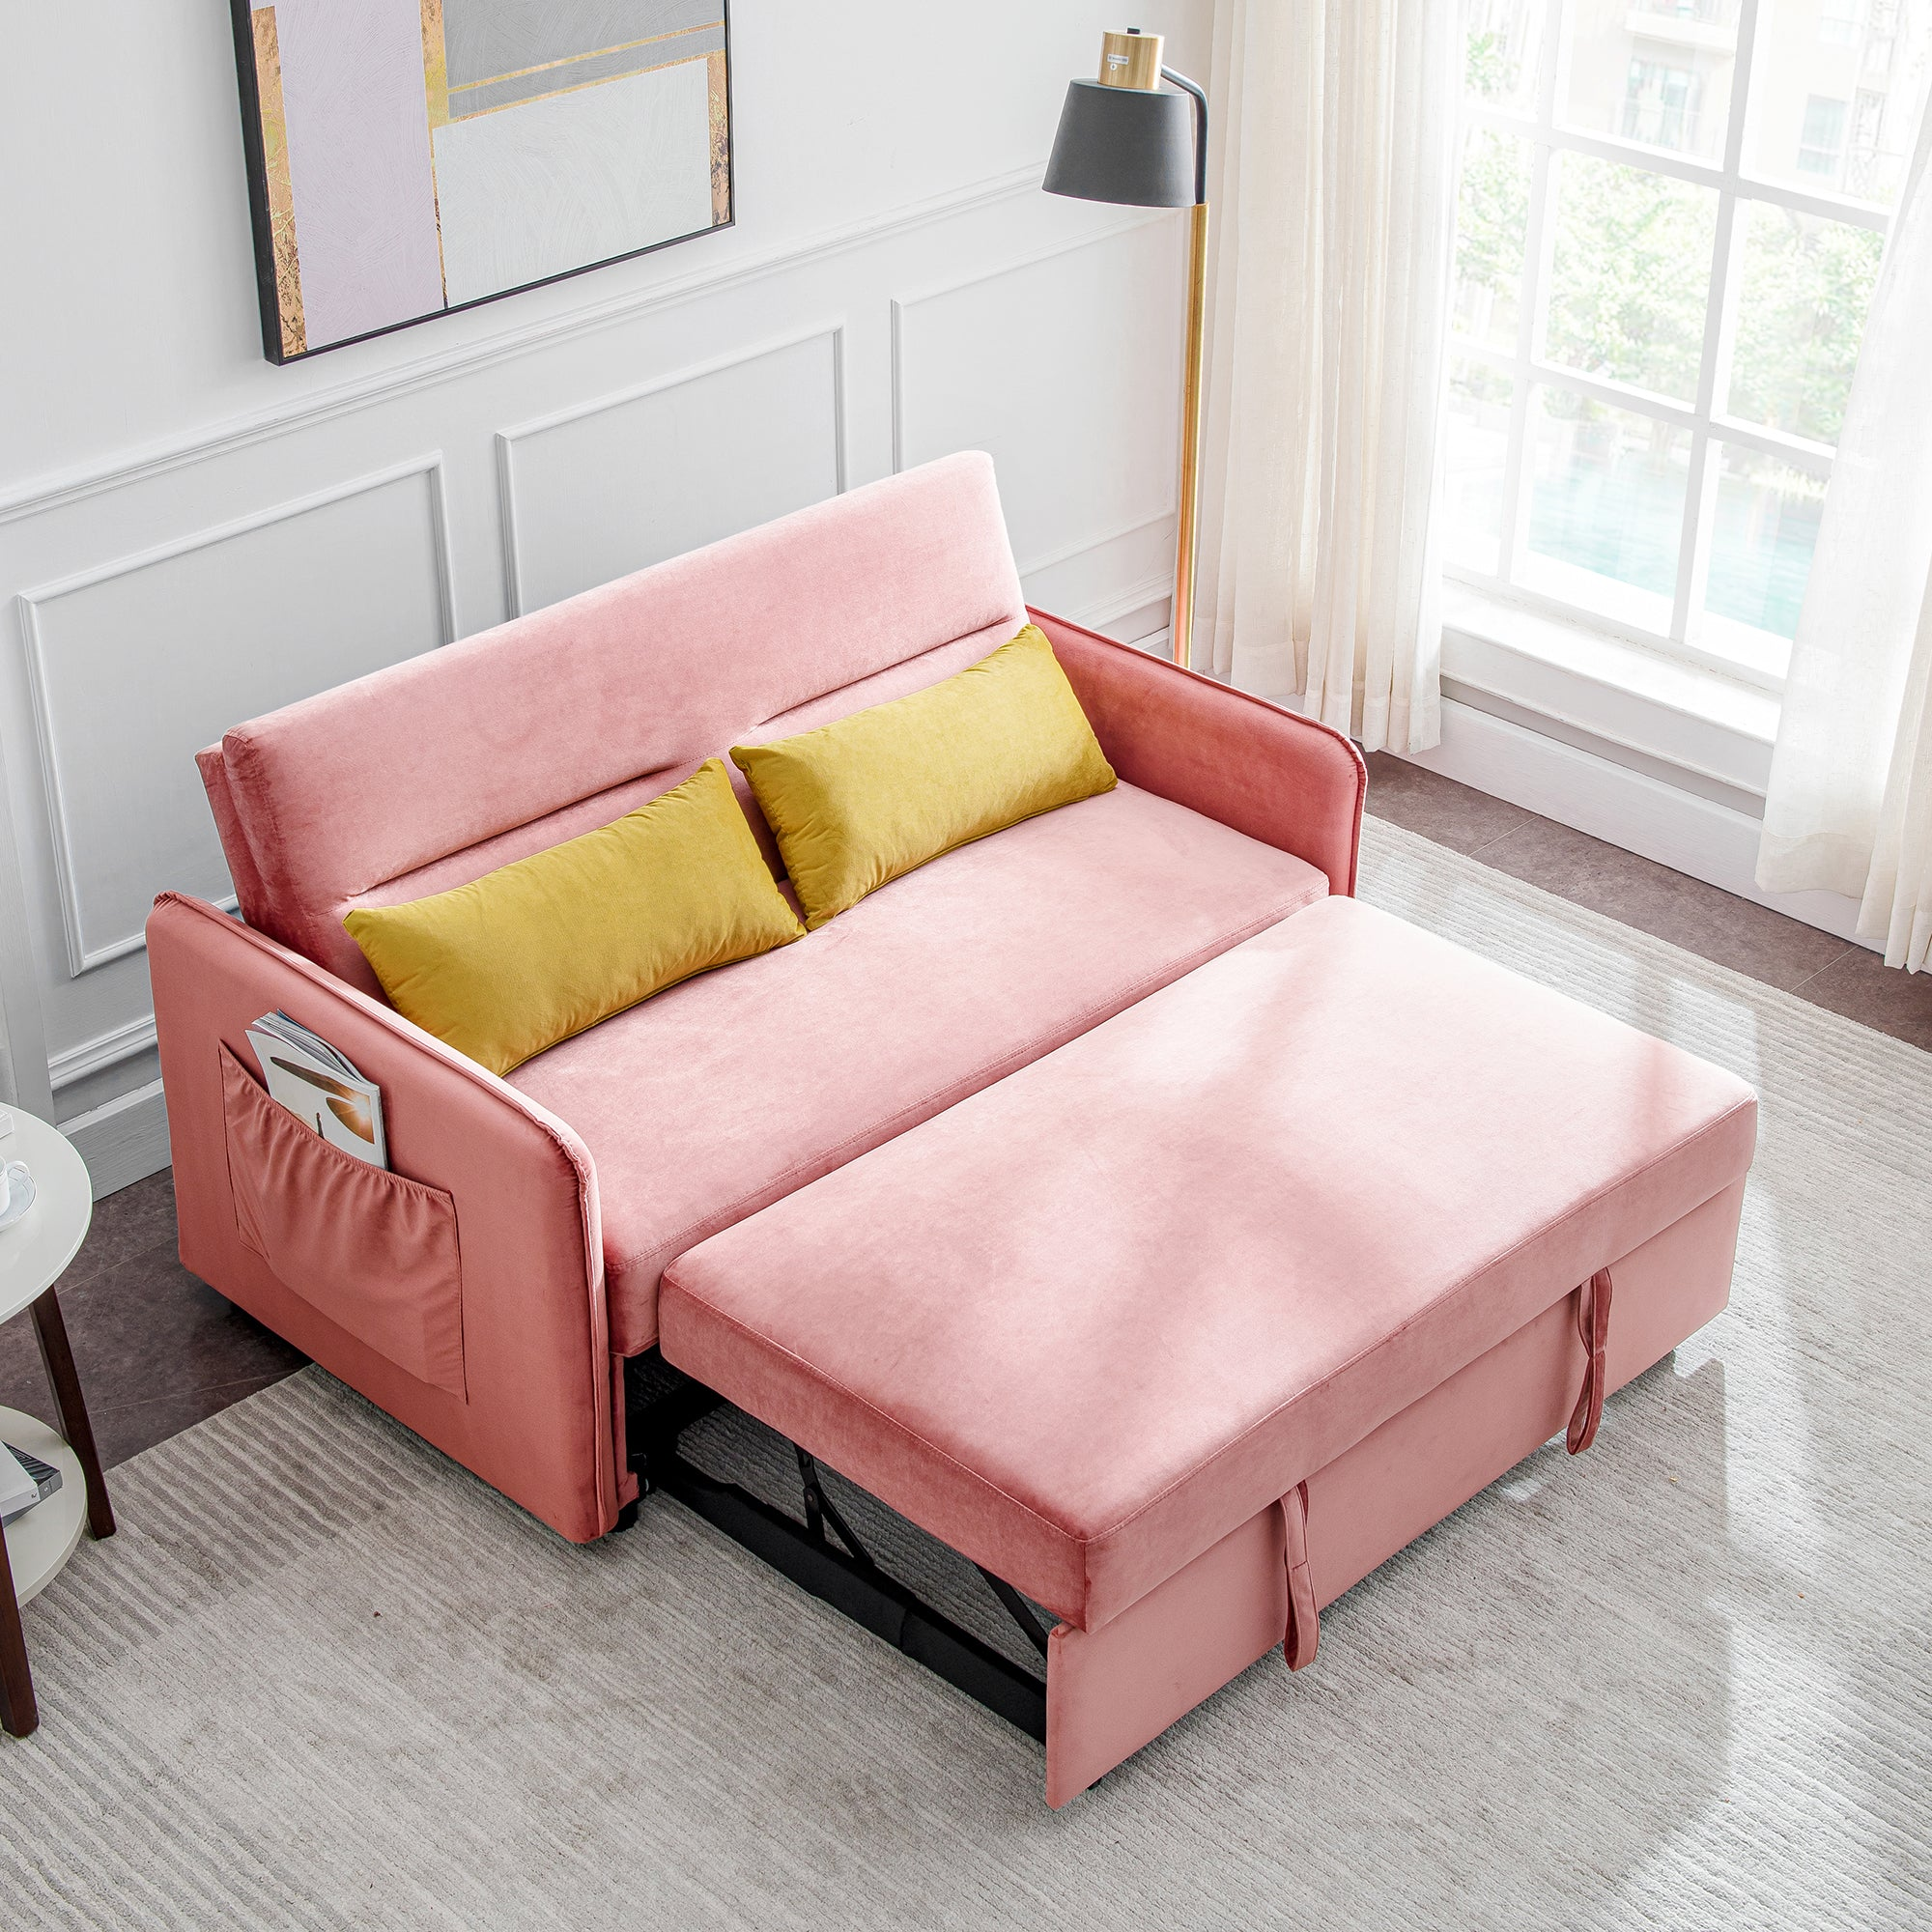 Sofas Beds Fold Out Couches Home Furniture Churanty Churanty